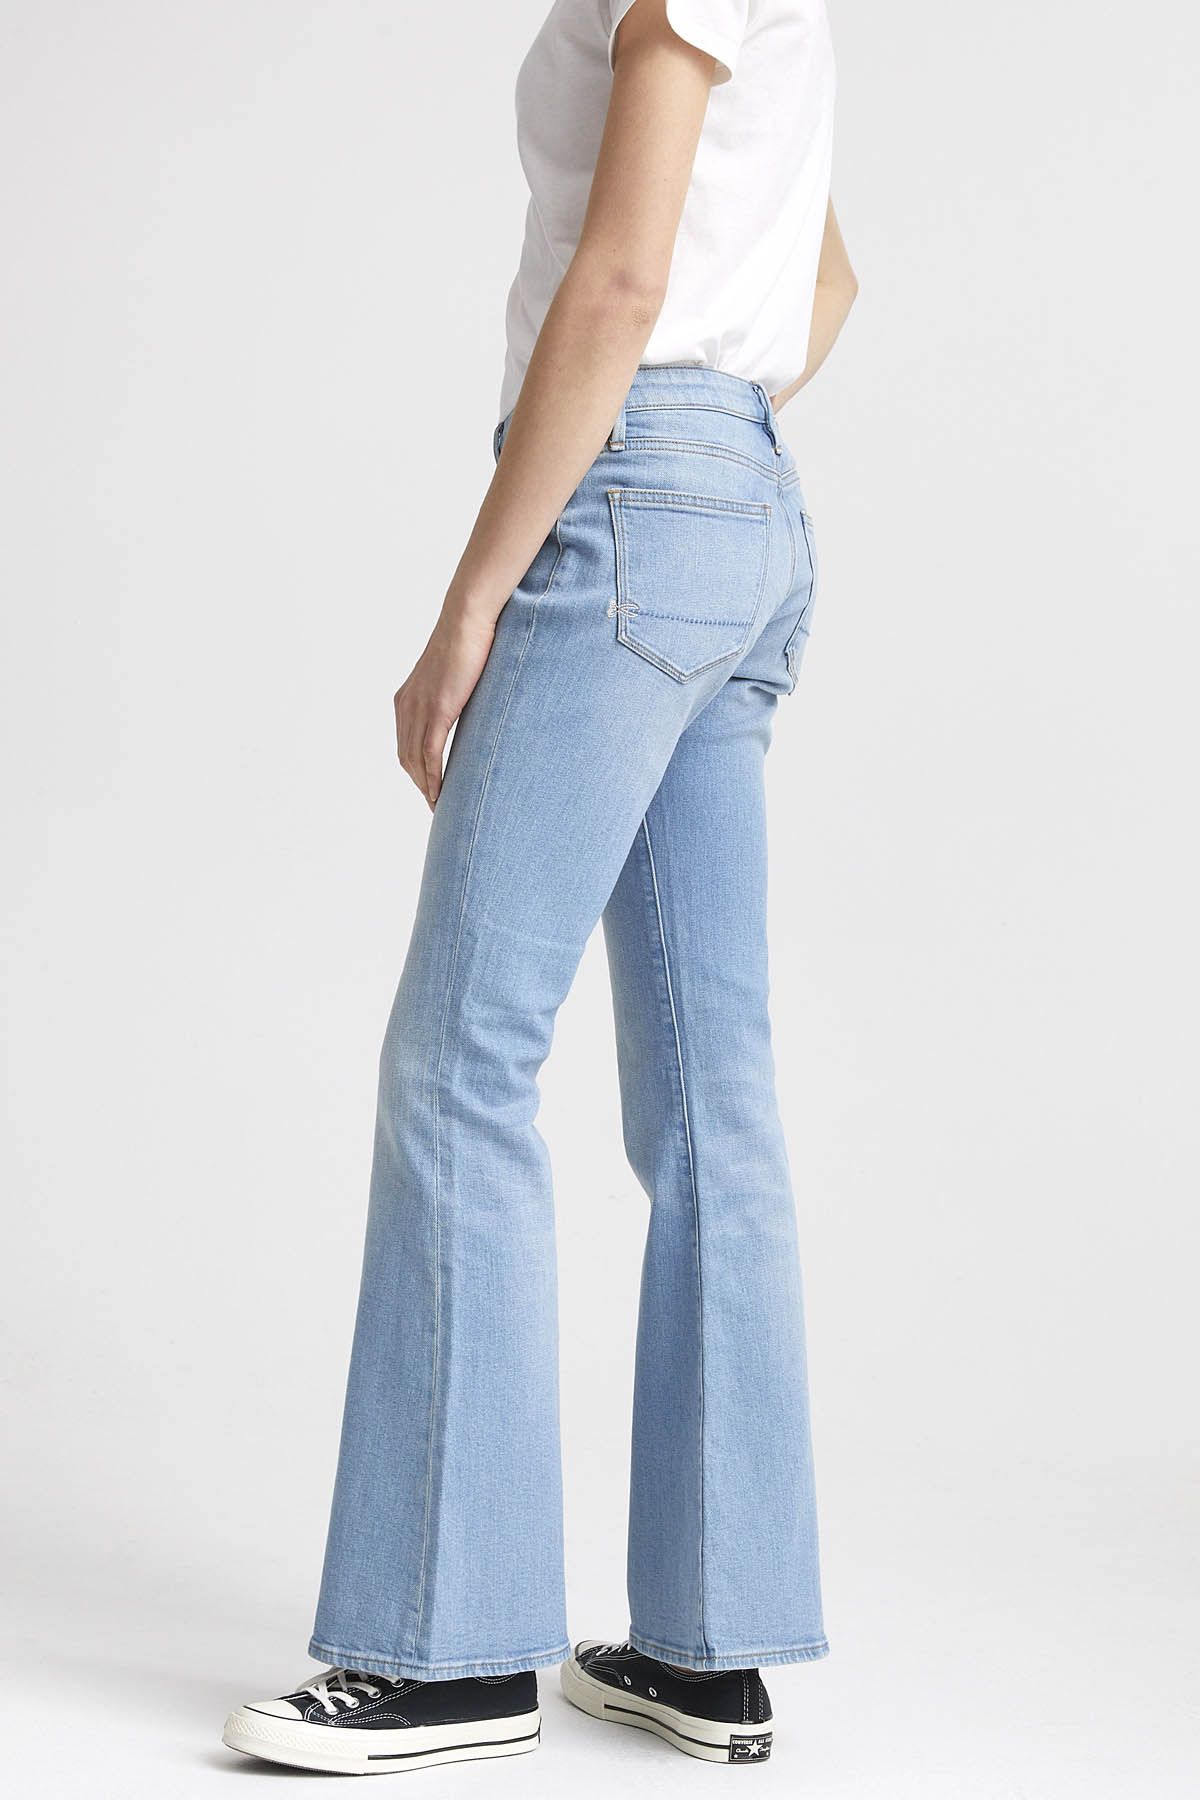 Farrah - Flared Fit Jeans - Back